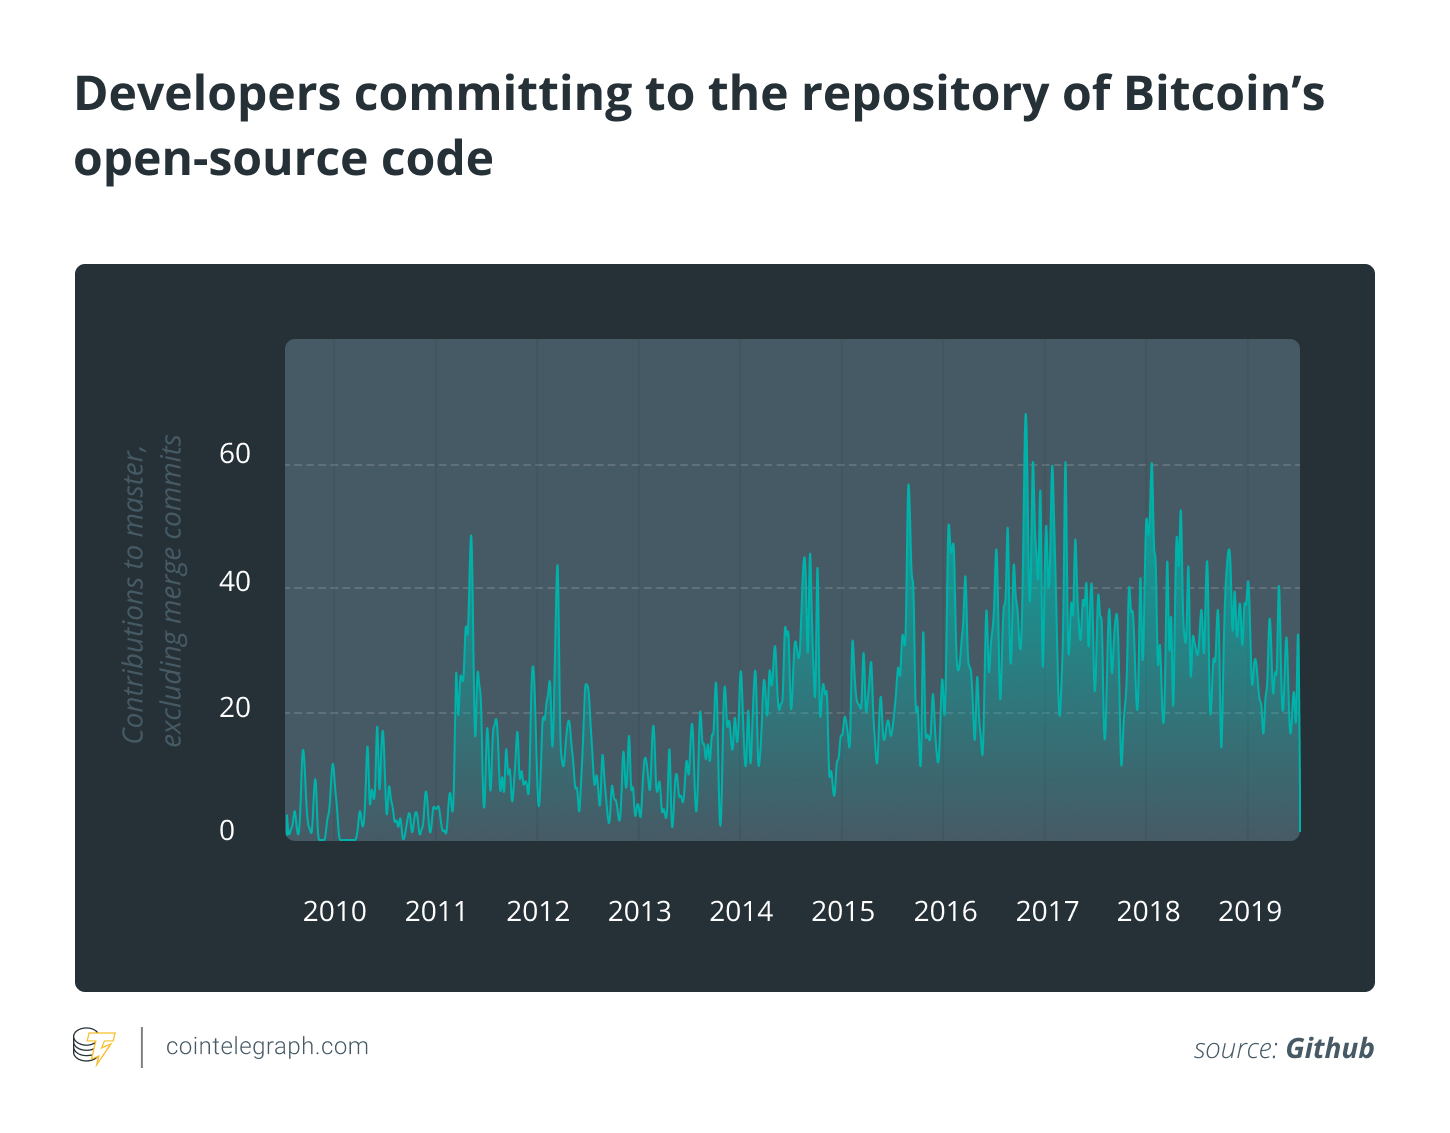 Developers committing to the repository of Bitcoin's open-source code